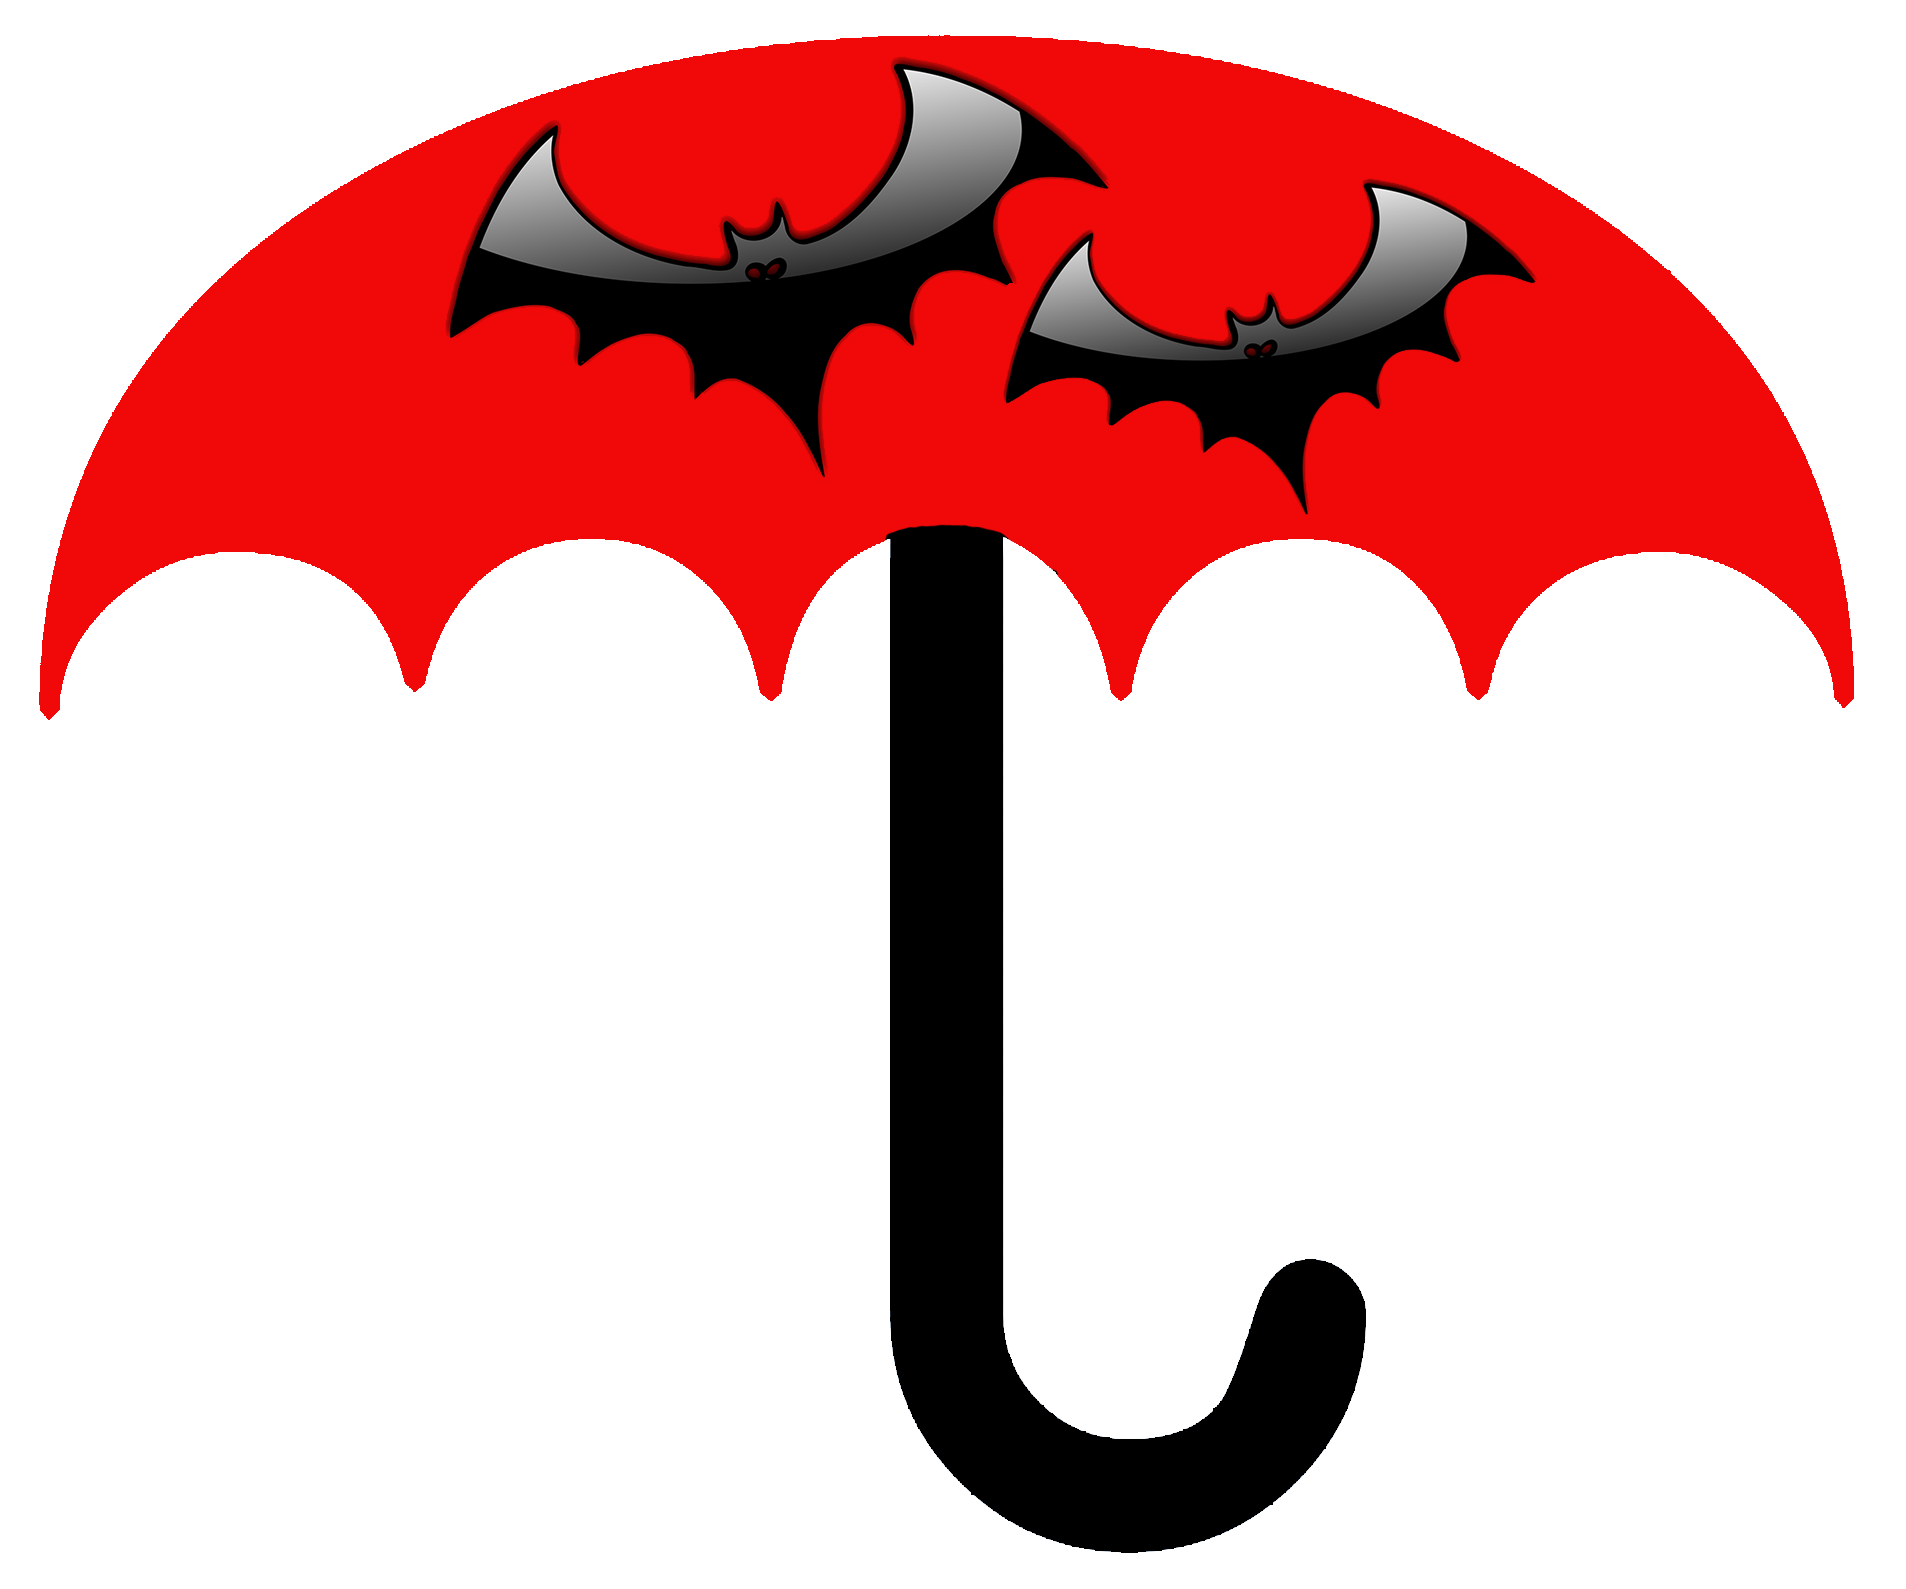 batman umbrella for kids red with bats